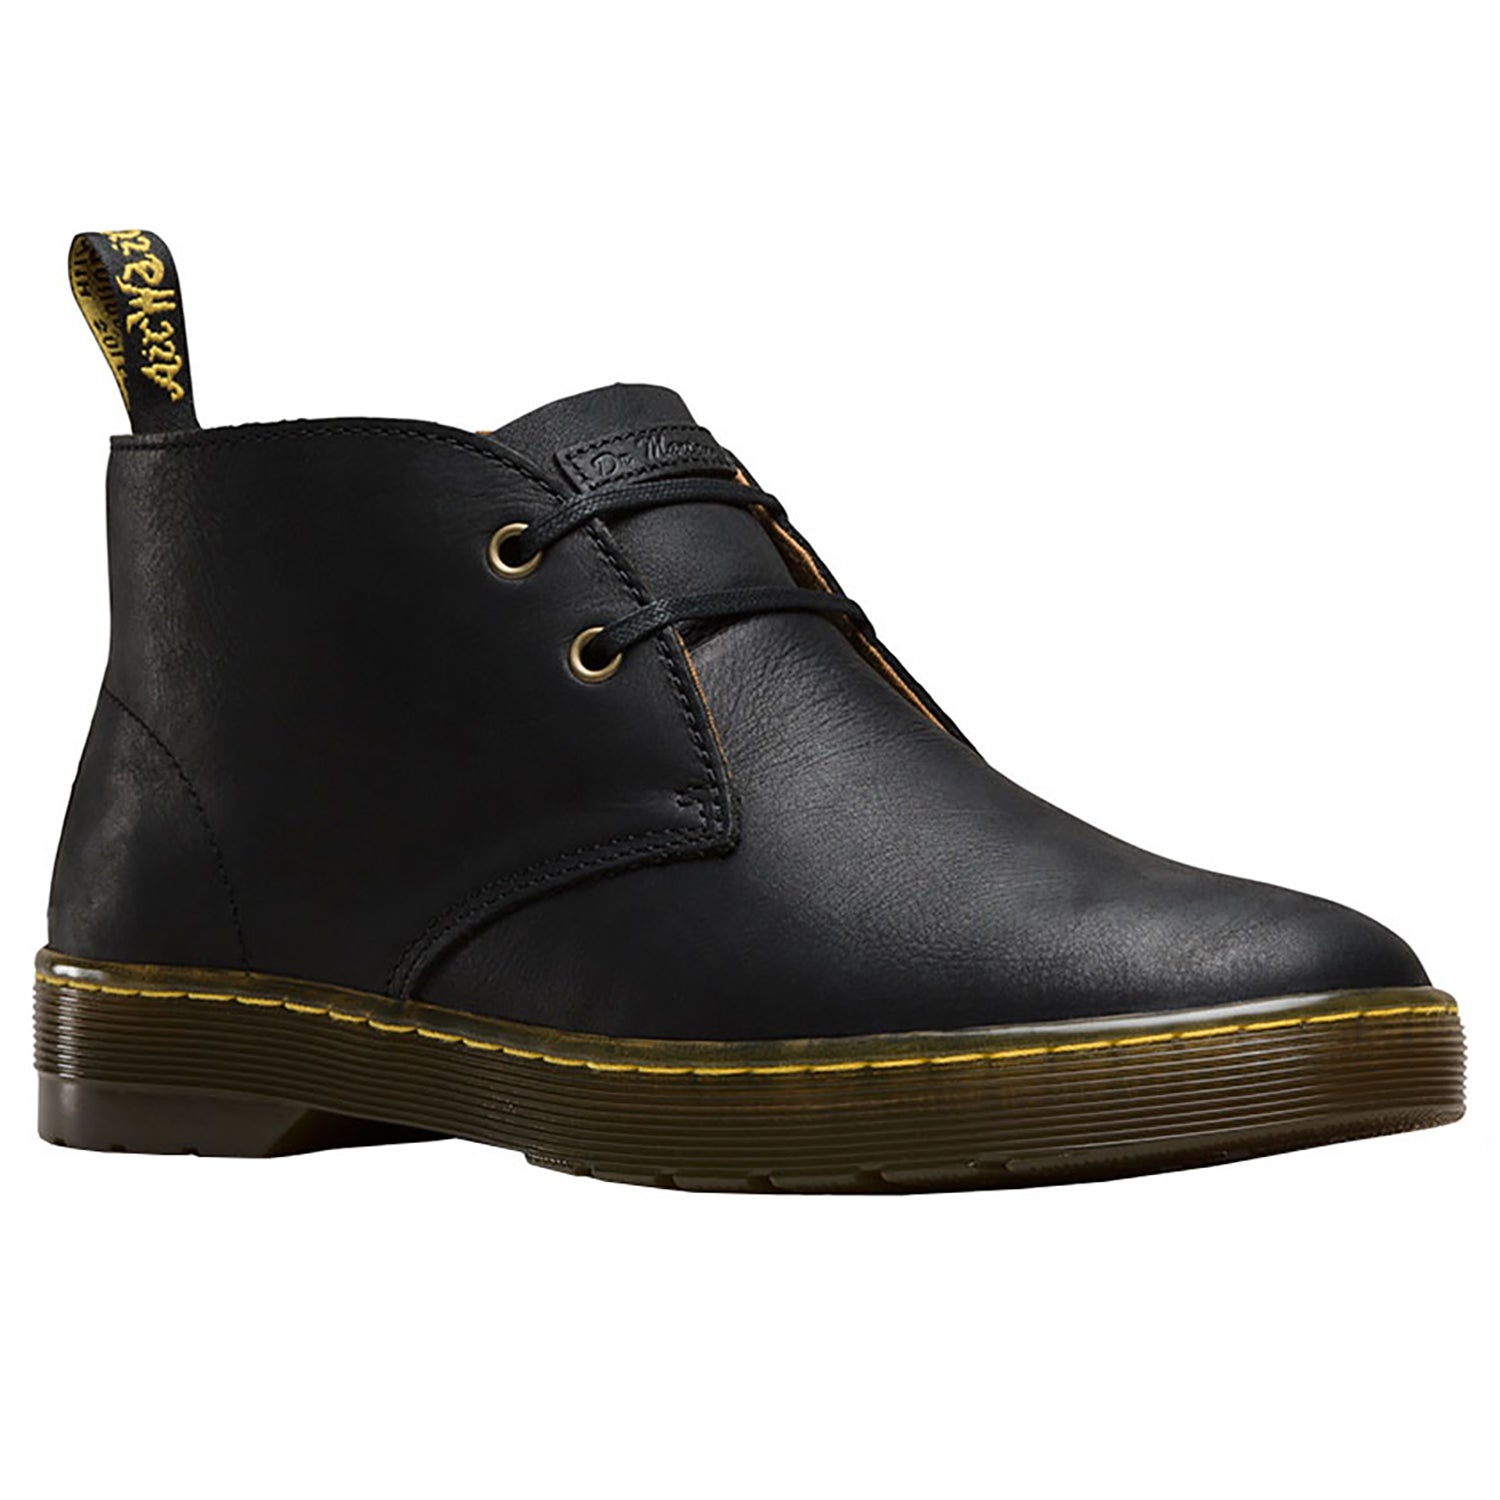 6e710eb62 Dr Martens Cabrillo Boty available from Blackleaf